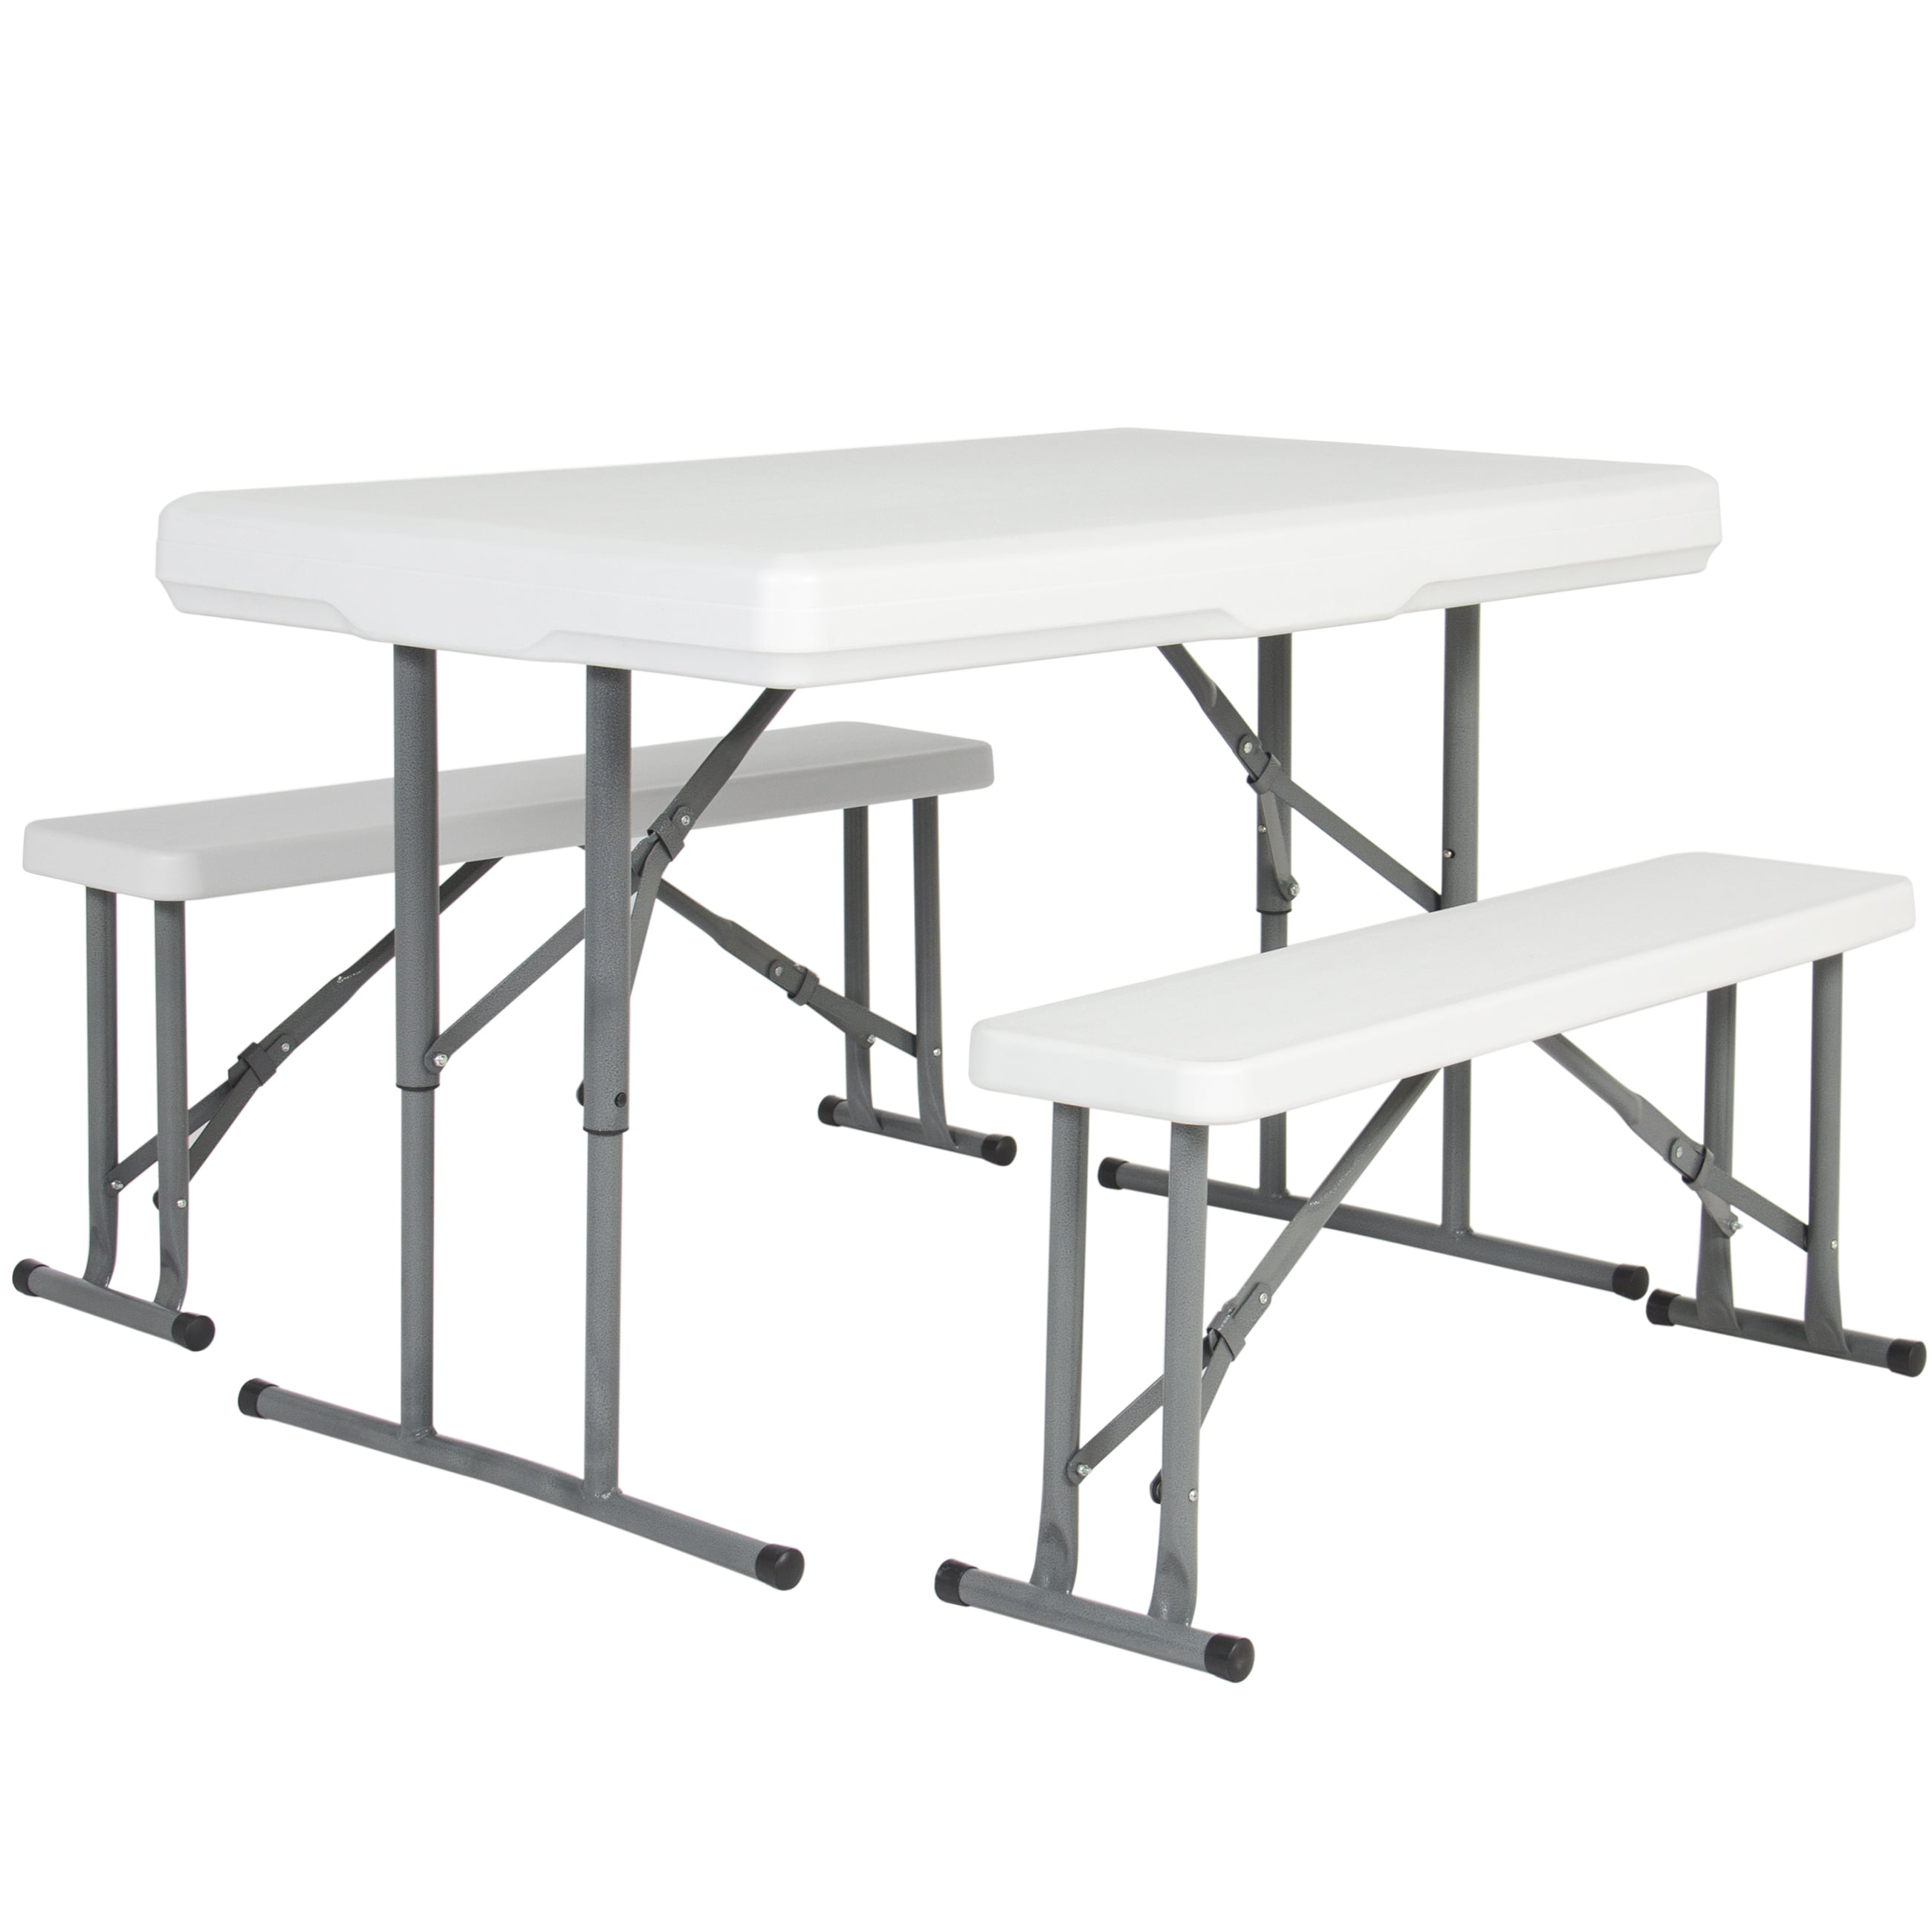 Best Choice Products Folding Table & Benches Portable Indoor Outdoor Picnic Party Dining Kitchen by